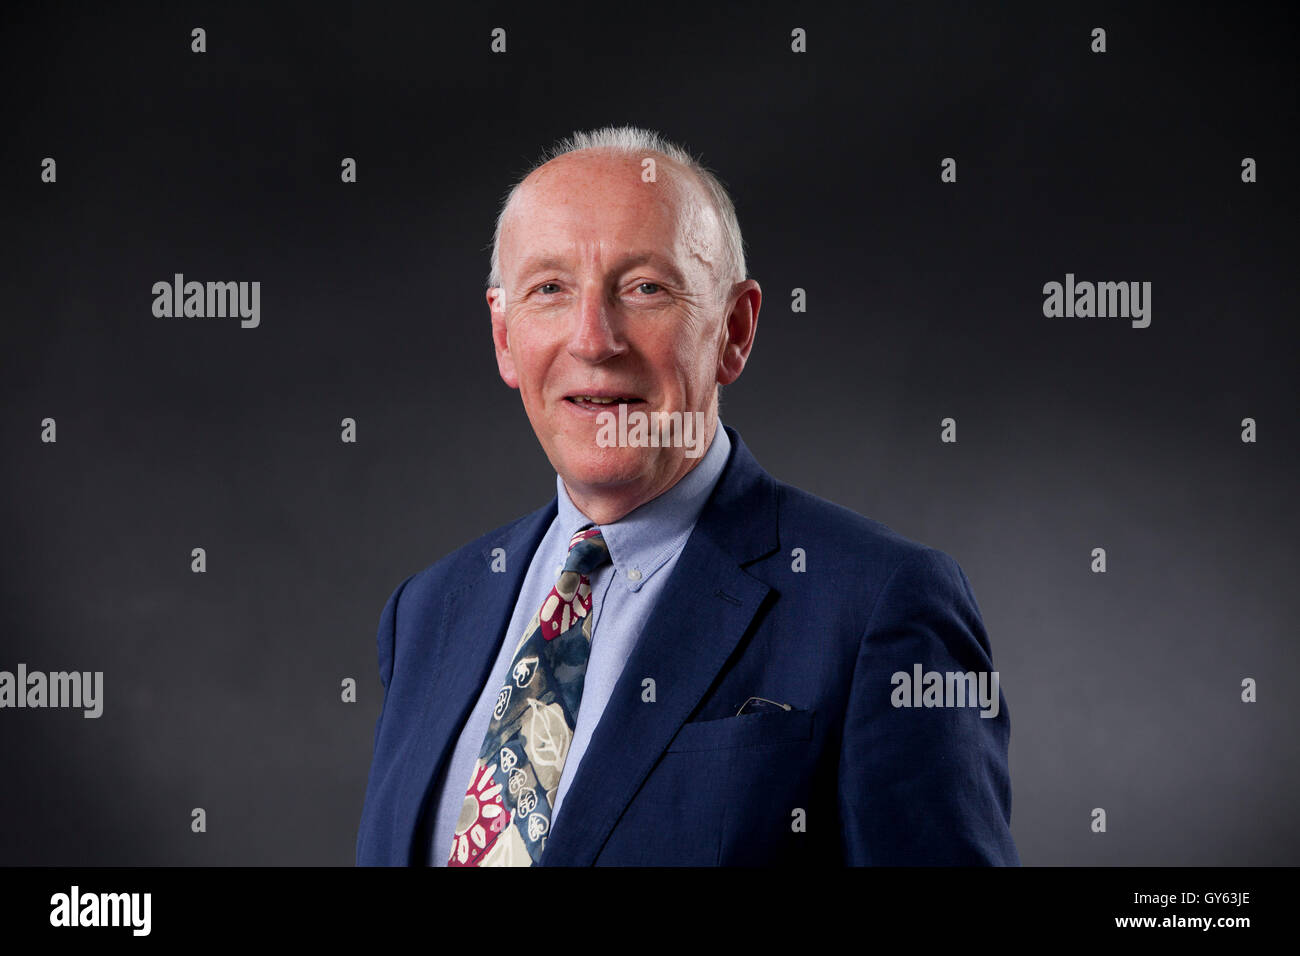 John Gillies, is a medical doctor who worked as general practitioner and who is the Depute Director of the Scottish - Stock Image